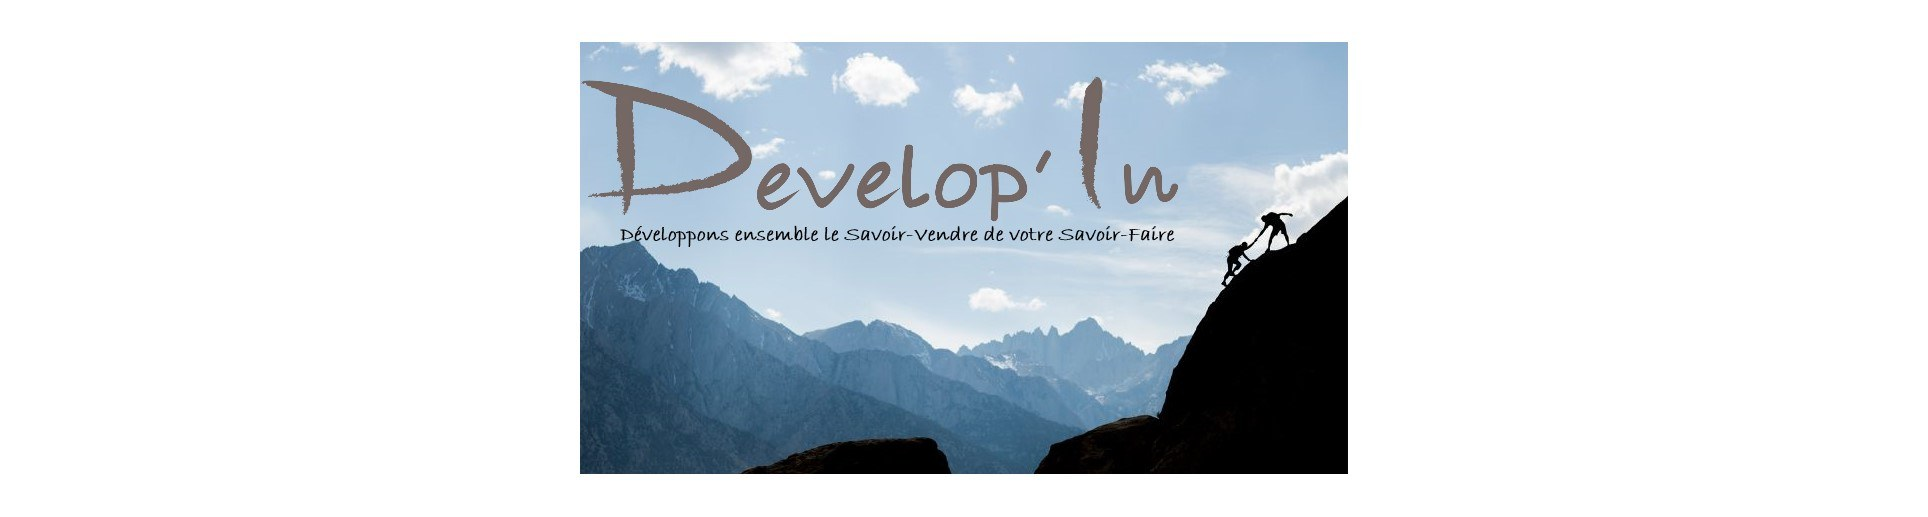 Develop'in